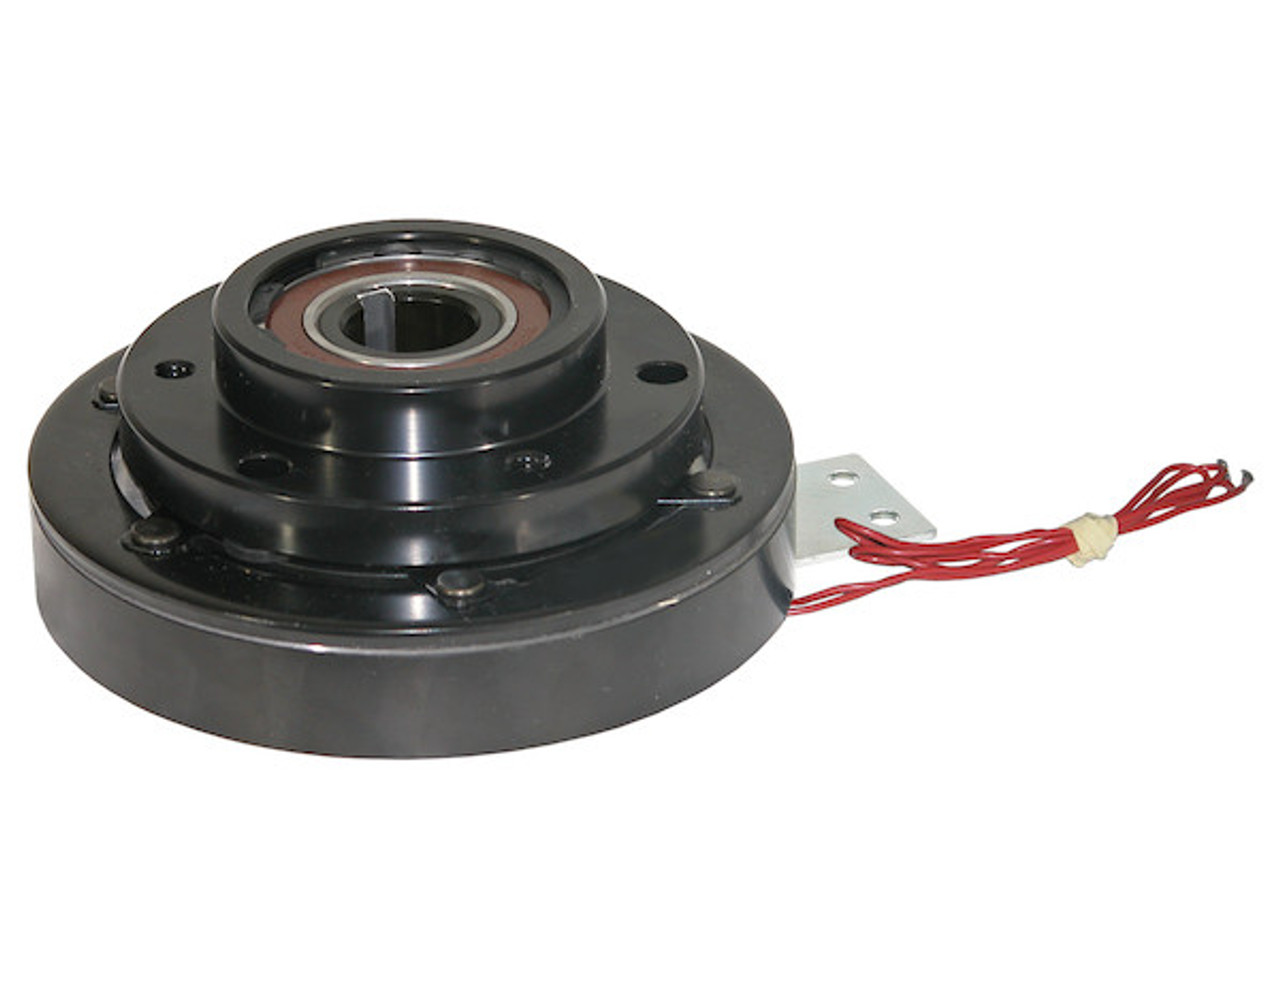 Buyers Spreader Clutch 1401150 REPLACEMENT SAM UNIVERSAL CLUTCH ASSEMBLY WITH 1 INCH SHAFT